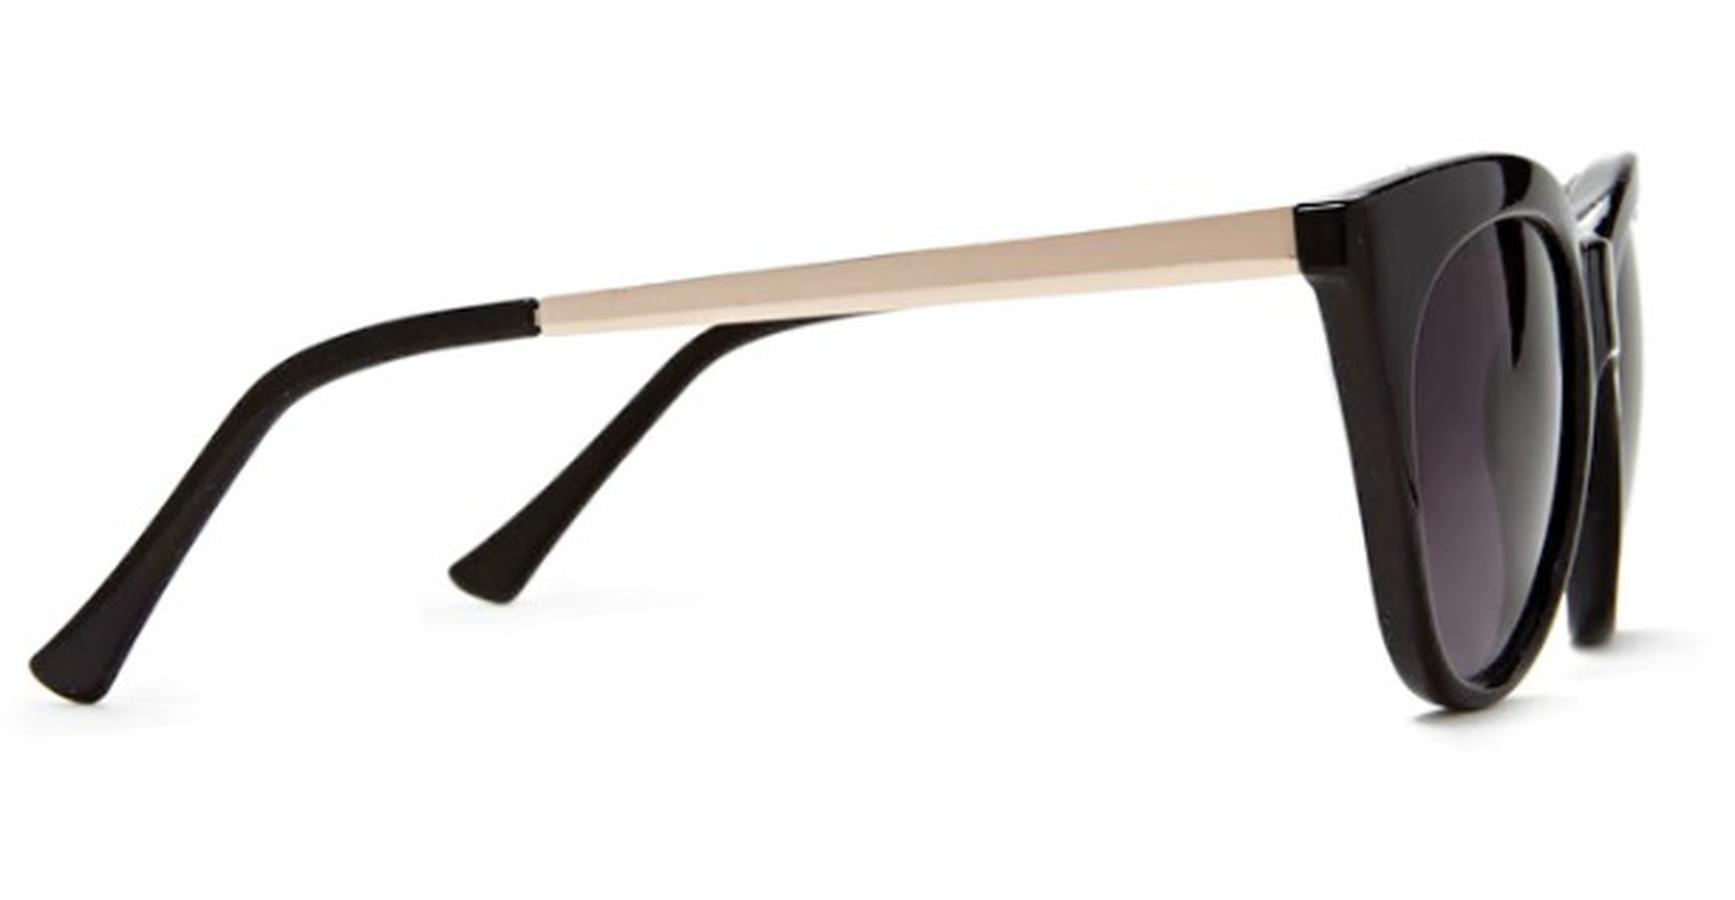 Kính Mắt F21 Classic Cat Eye Sunglasses 1000132062